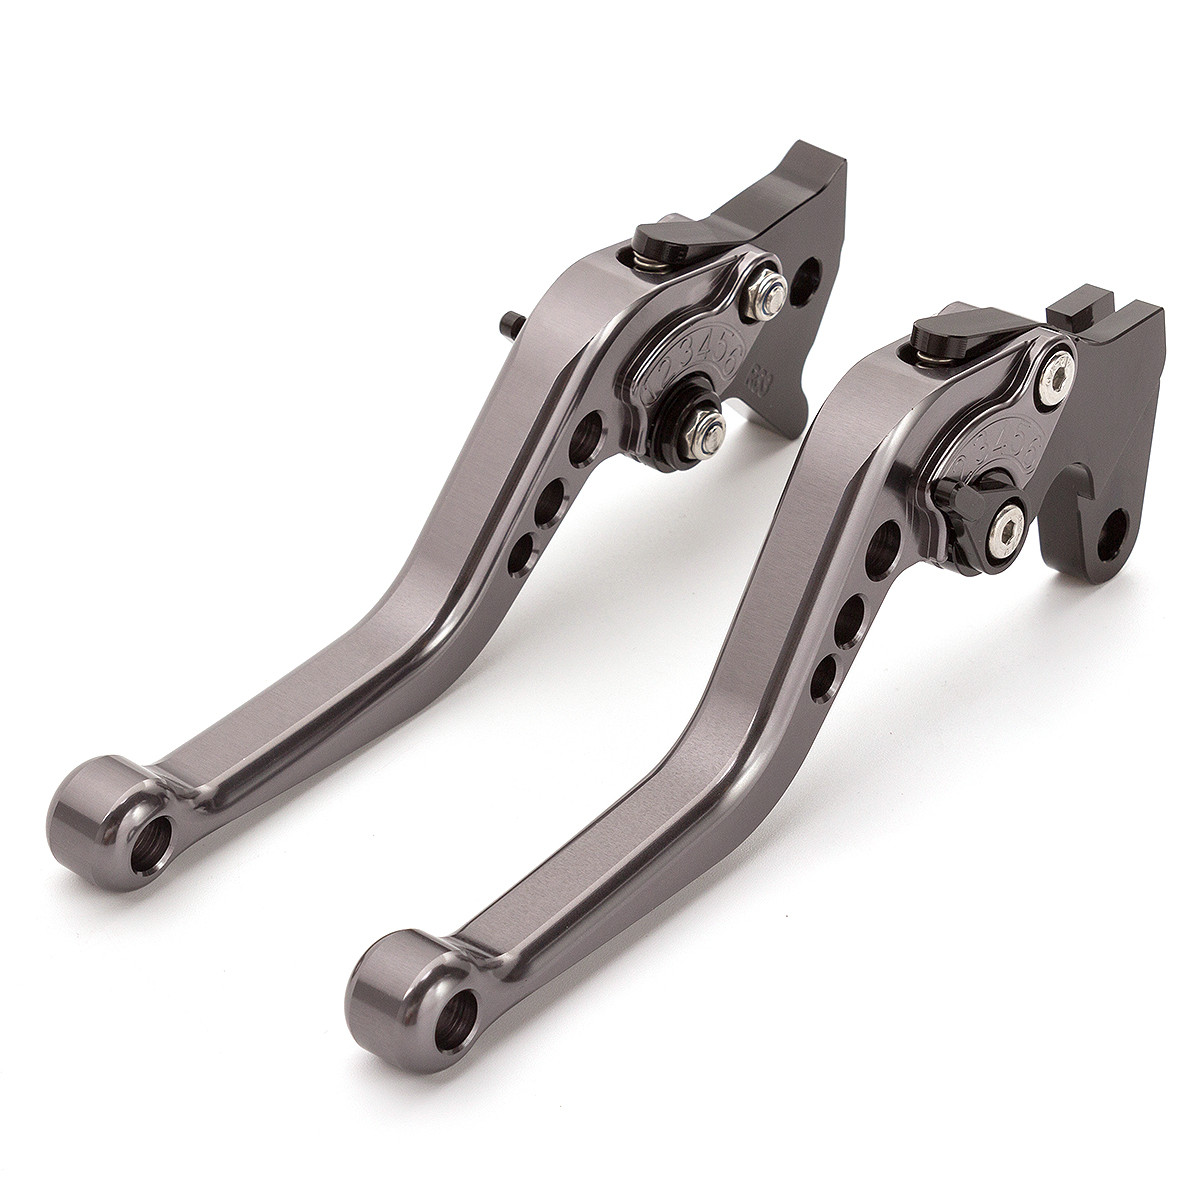 For <font><b>YAMAHA</b></font> <font><b>FZ6</b></font> NS 2005 <font><b>2006</b></font> Gray CNC Aluminum Adjustable Brake Clutch Lever For <font><b>YAMAHA</b></font> <font><b>FZ6</b></font> NA 2007-2009 <font><b>FZ6</b></font> N 2004-2009 image